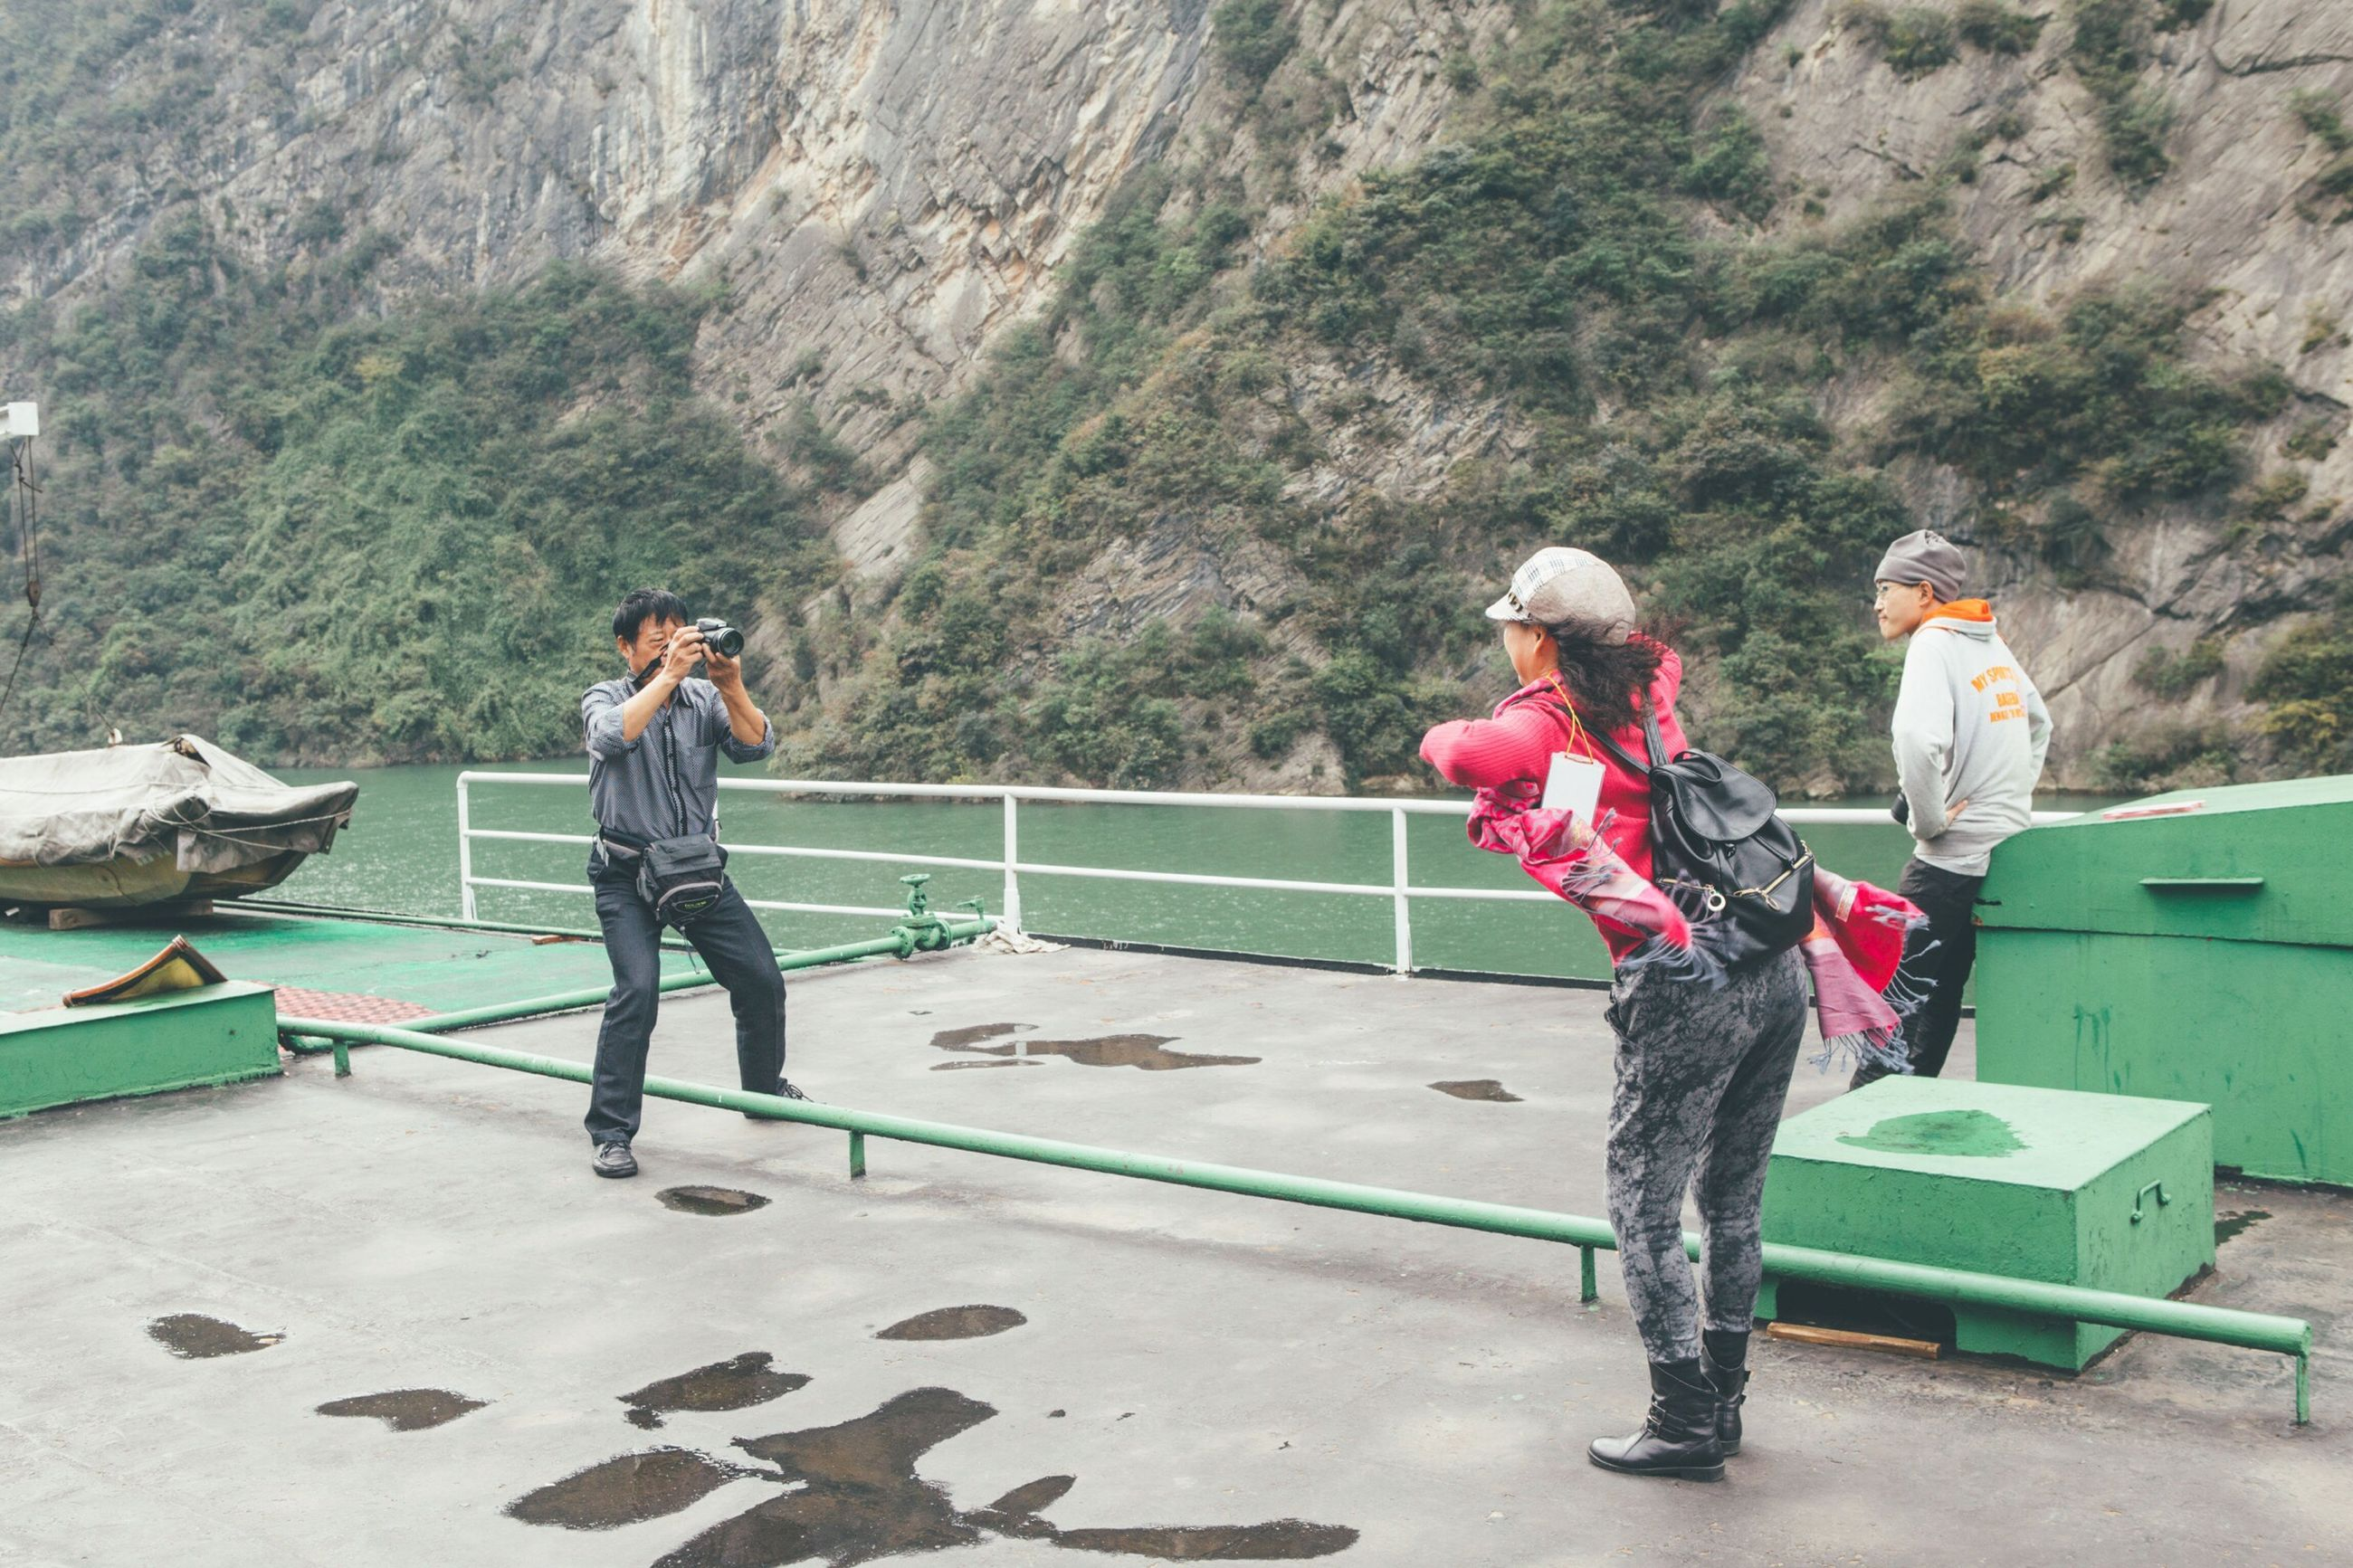 leisure activity, lifestyles, young women, full length, togetherness, young adult, person, mountain, steps, tranquility, casual clothing, water, remote, tranquil scene, nature, outdoors, scenics, rock formation, day, non-urban scene, beauty in nature, countryside